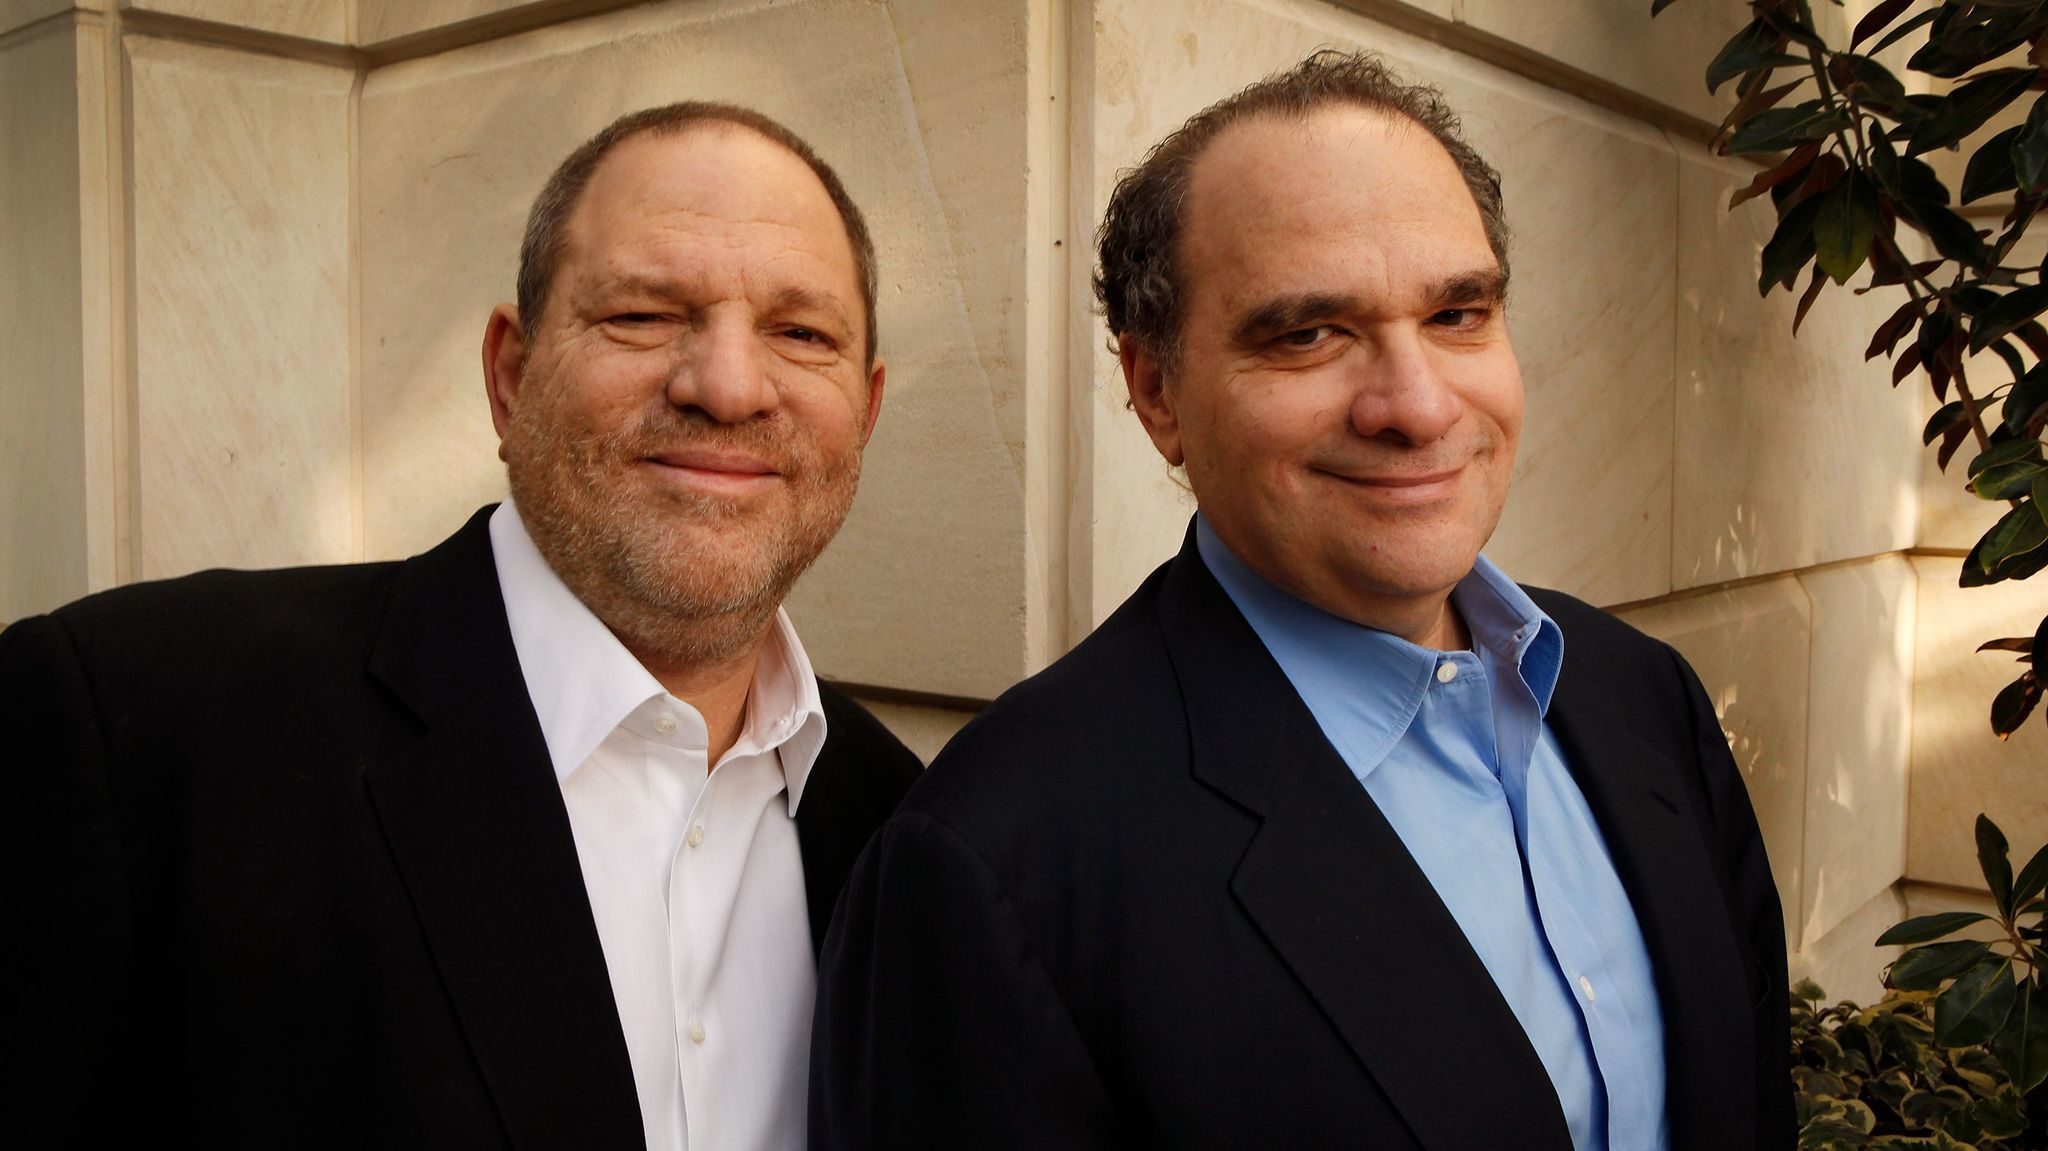 Harvey, left, and Bob Weinstein, at the Peninsula Hotel in Beverly Hills, Calif. on Feb. 24, 2012.